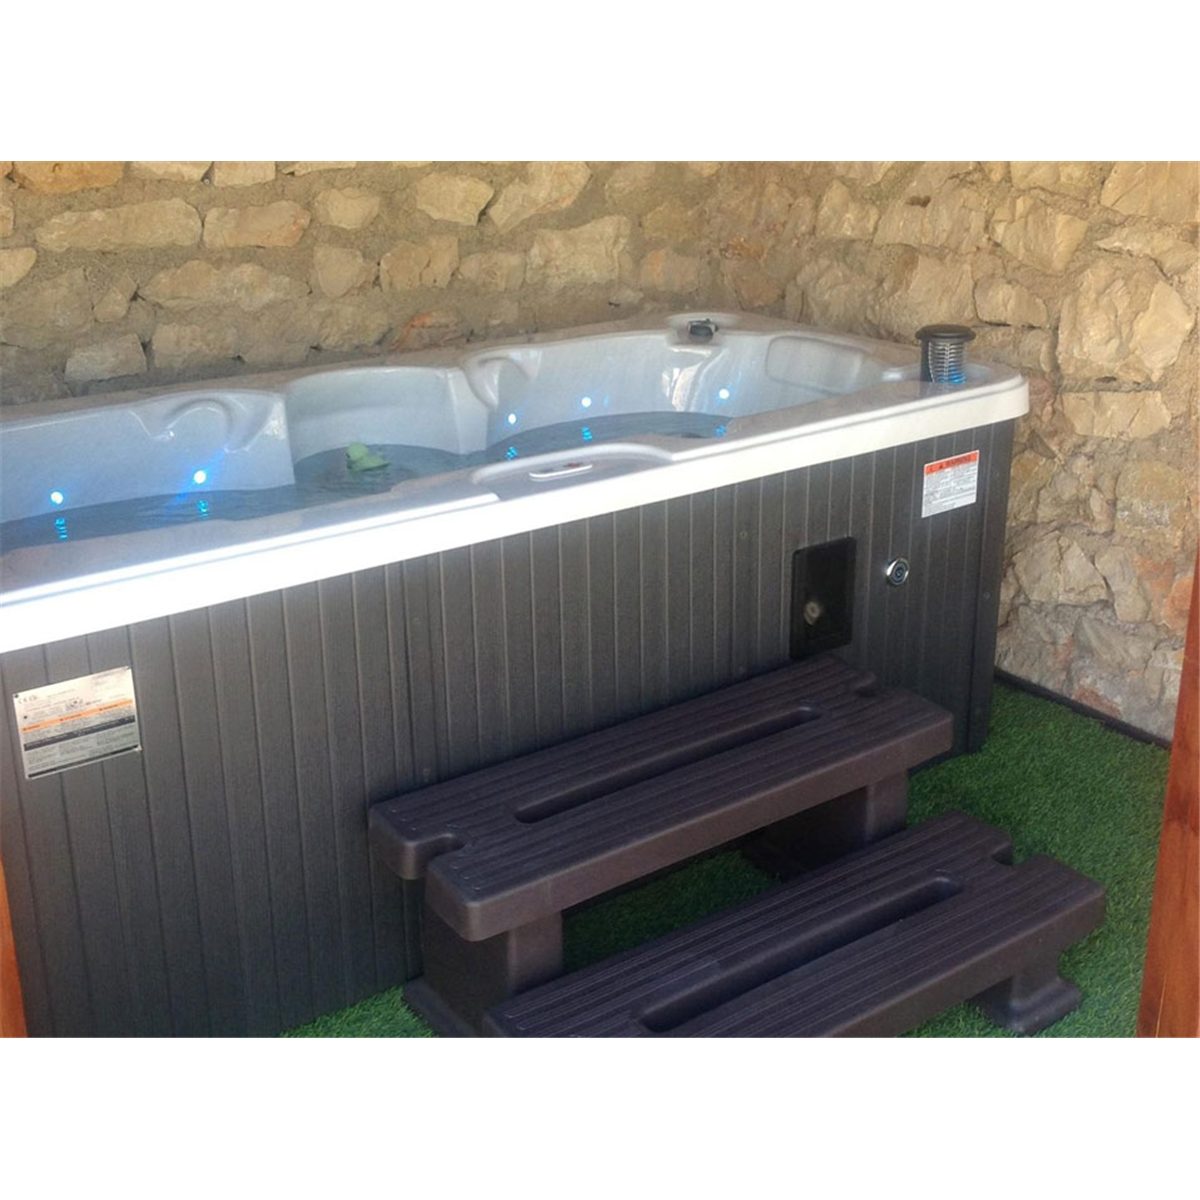 Yukon Plug And Play 2 Person Hot Tub 213m X 100m Free Wiring Cost Uk Delivery Install Chemical Kit Worth 120 Homeberry